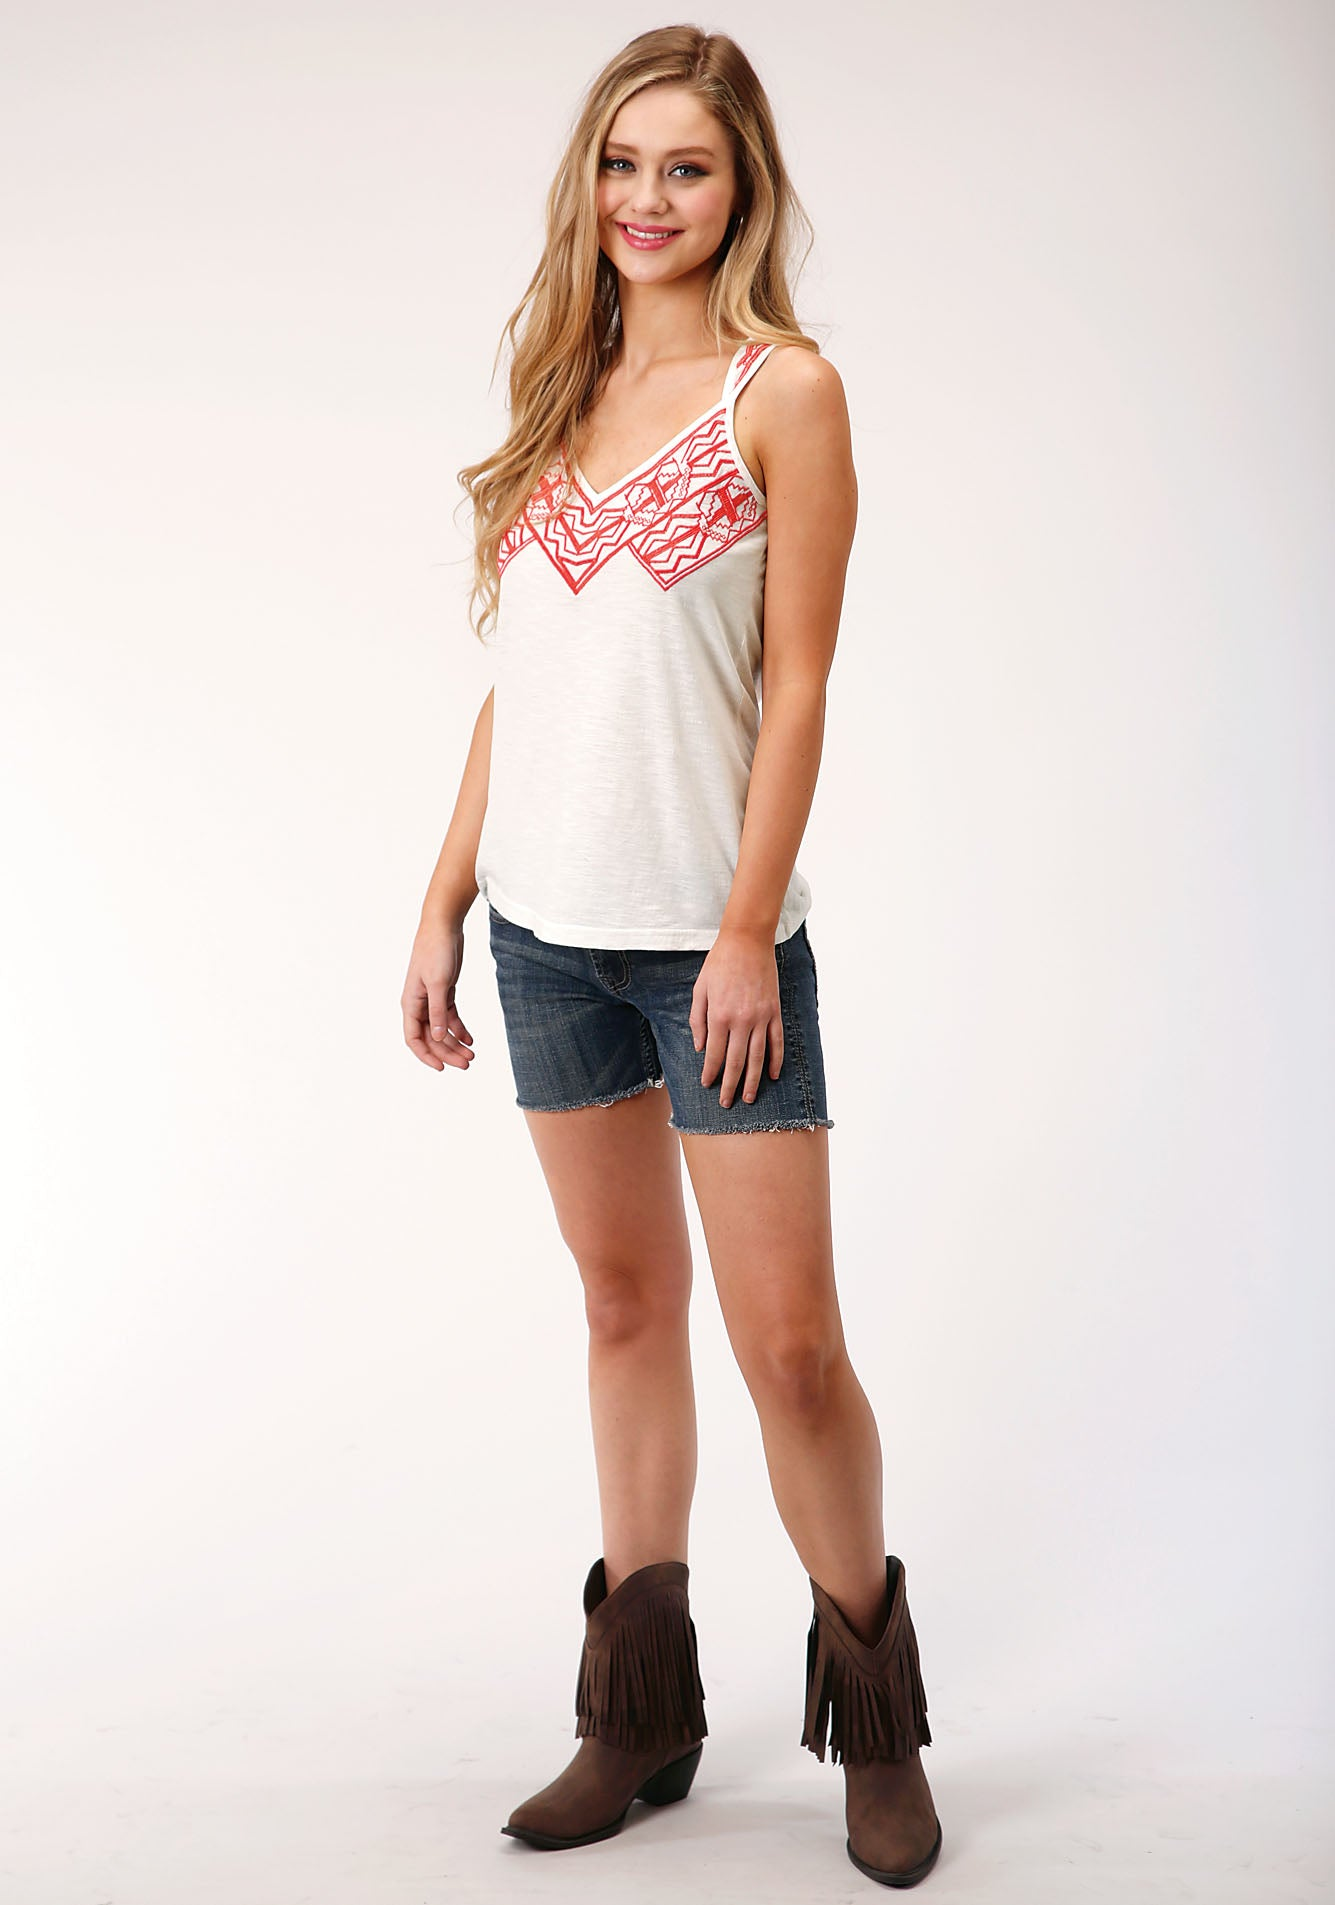 ROPER WOMENS WHITE 00125 COTTON SLUB JERSEY TANK FIVE STAR COLLECTION- SPRING I SLEEVELESS